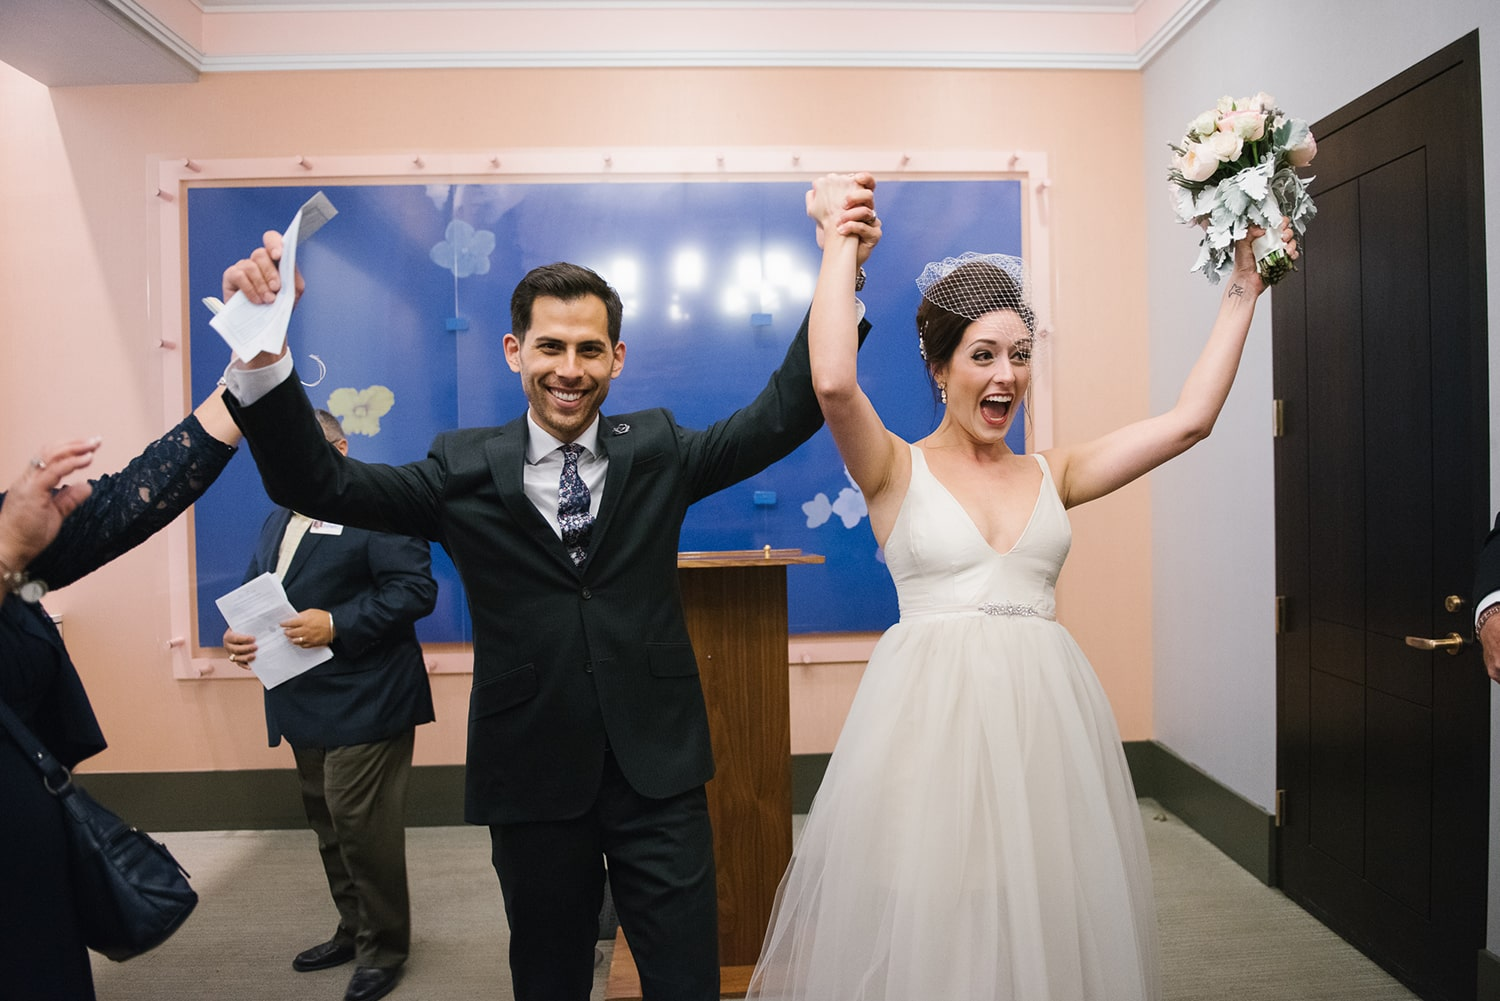 Getting married at NYC City Hall: Manhattan or Brooklyn?